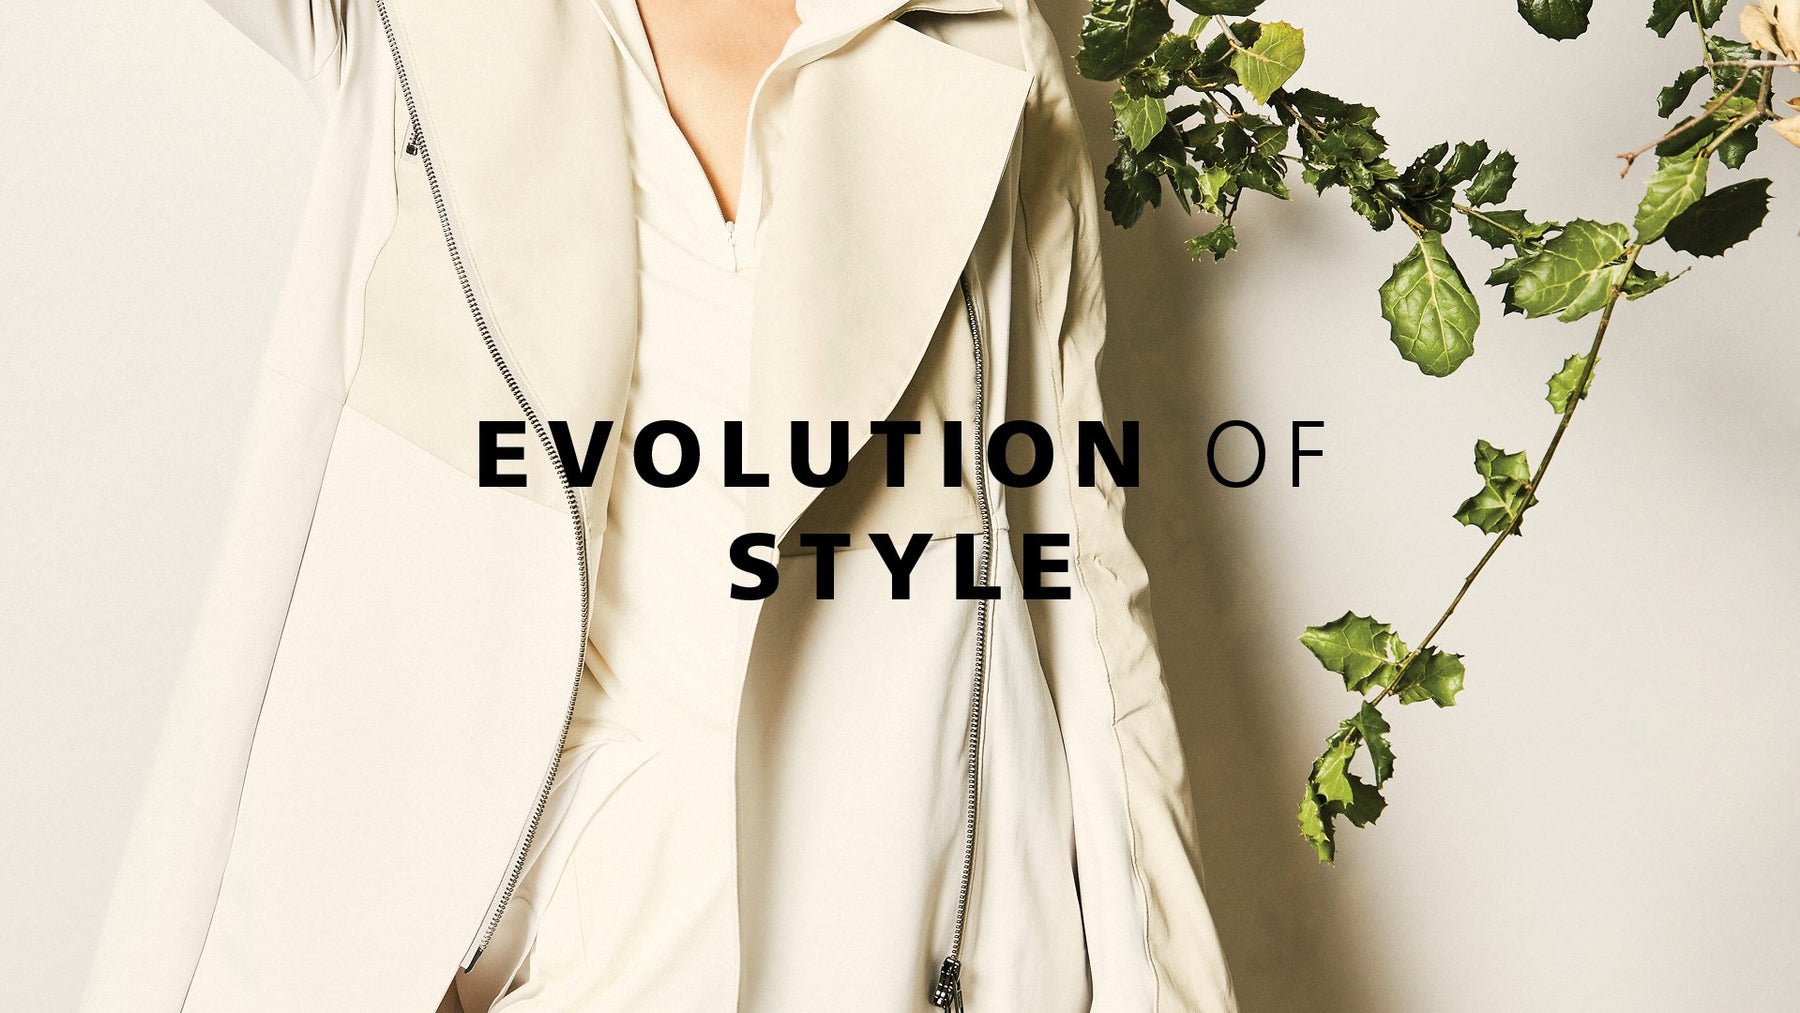 Apparel - Evolution of Style: Q&A with Elaine Kim